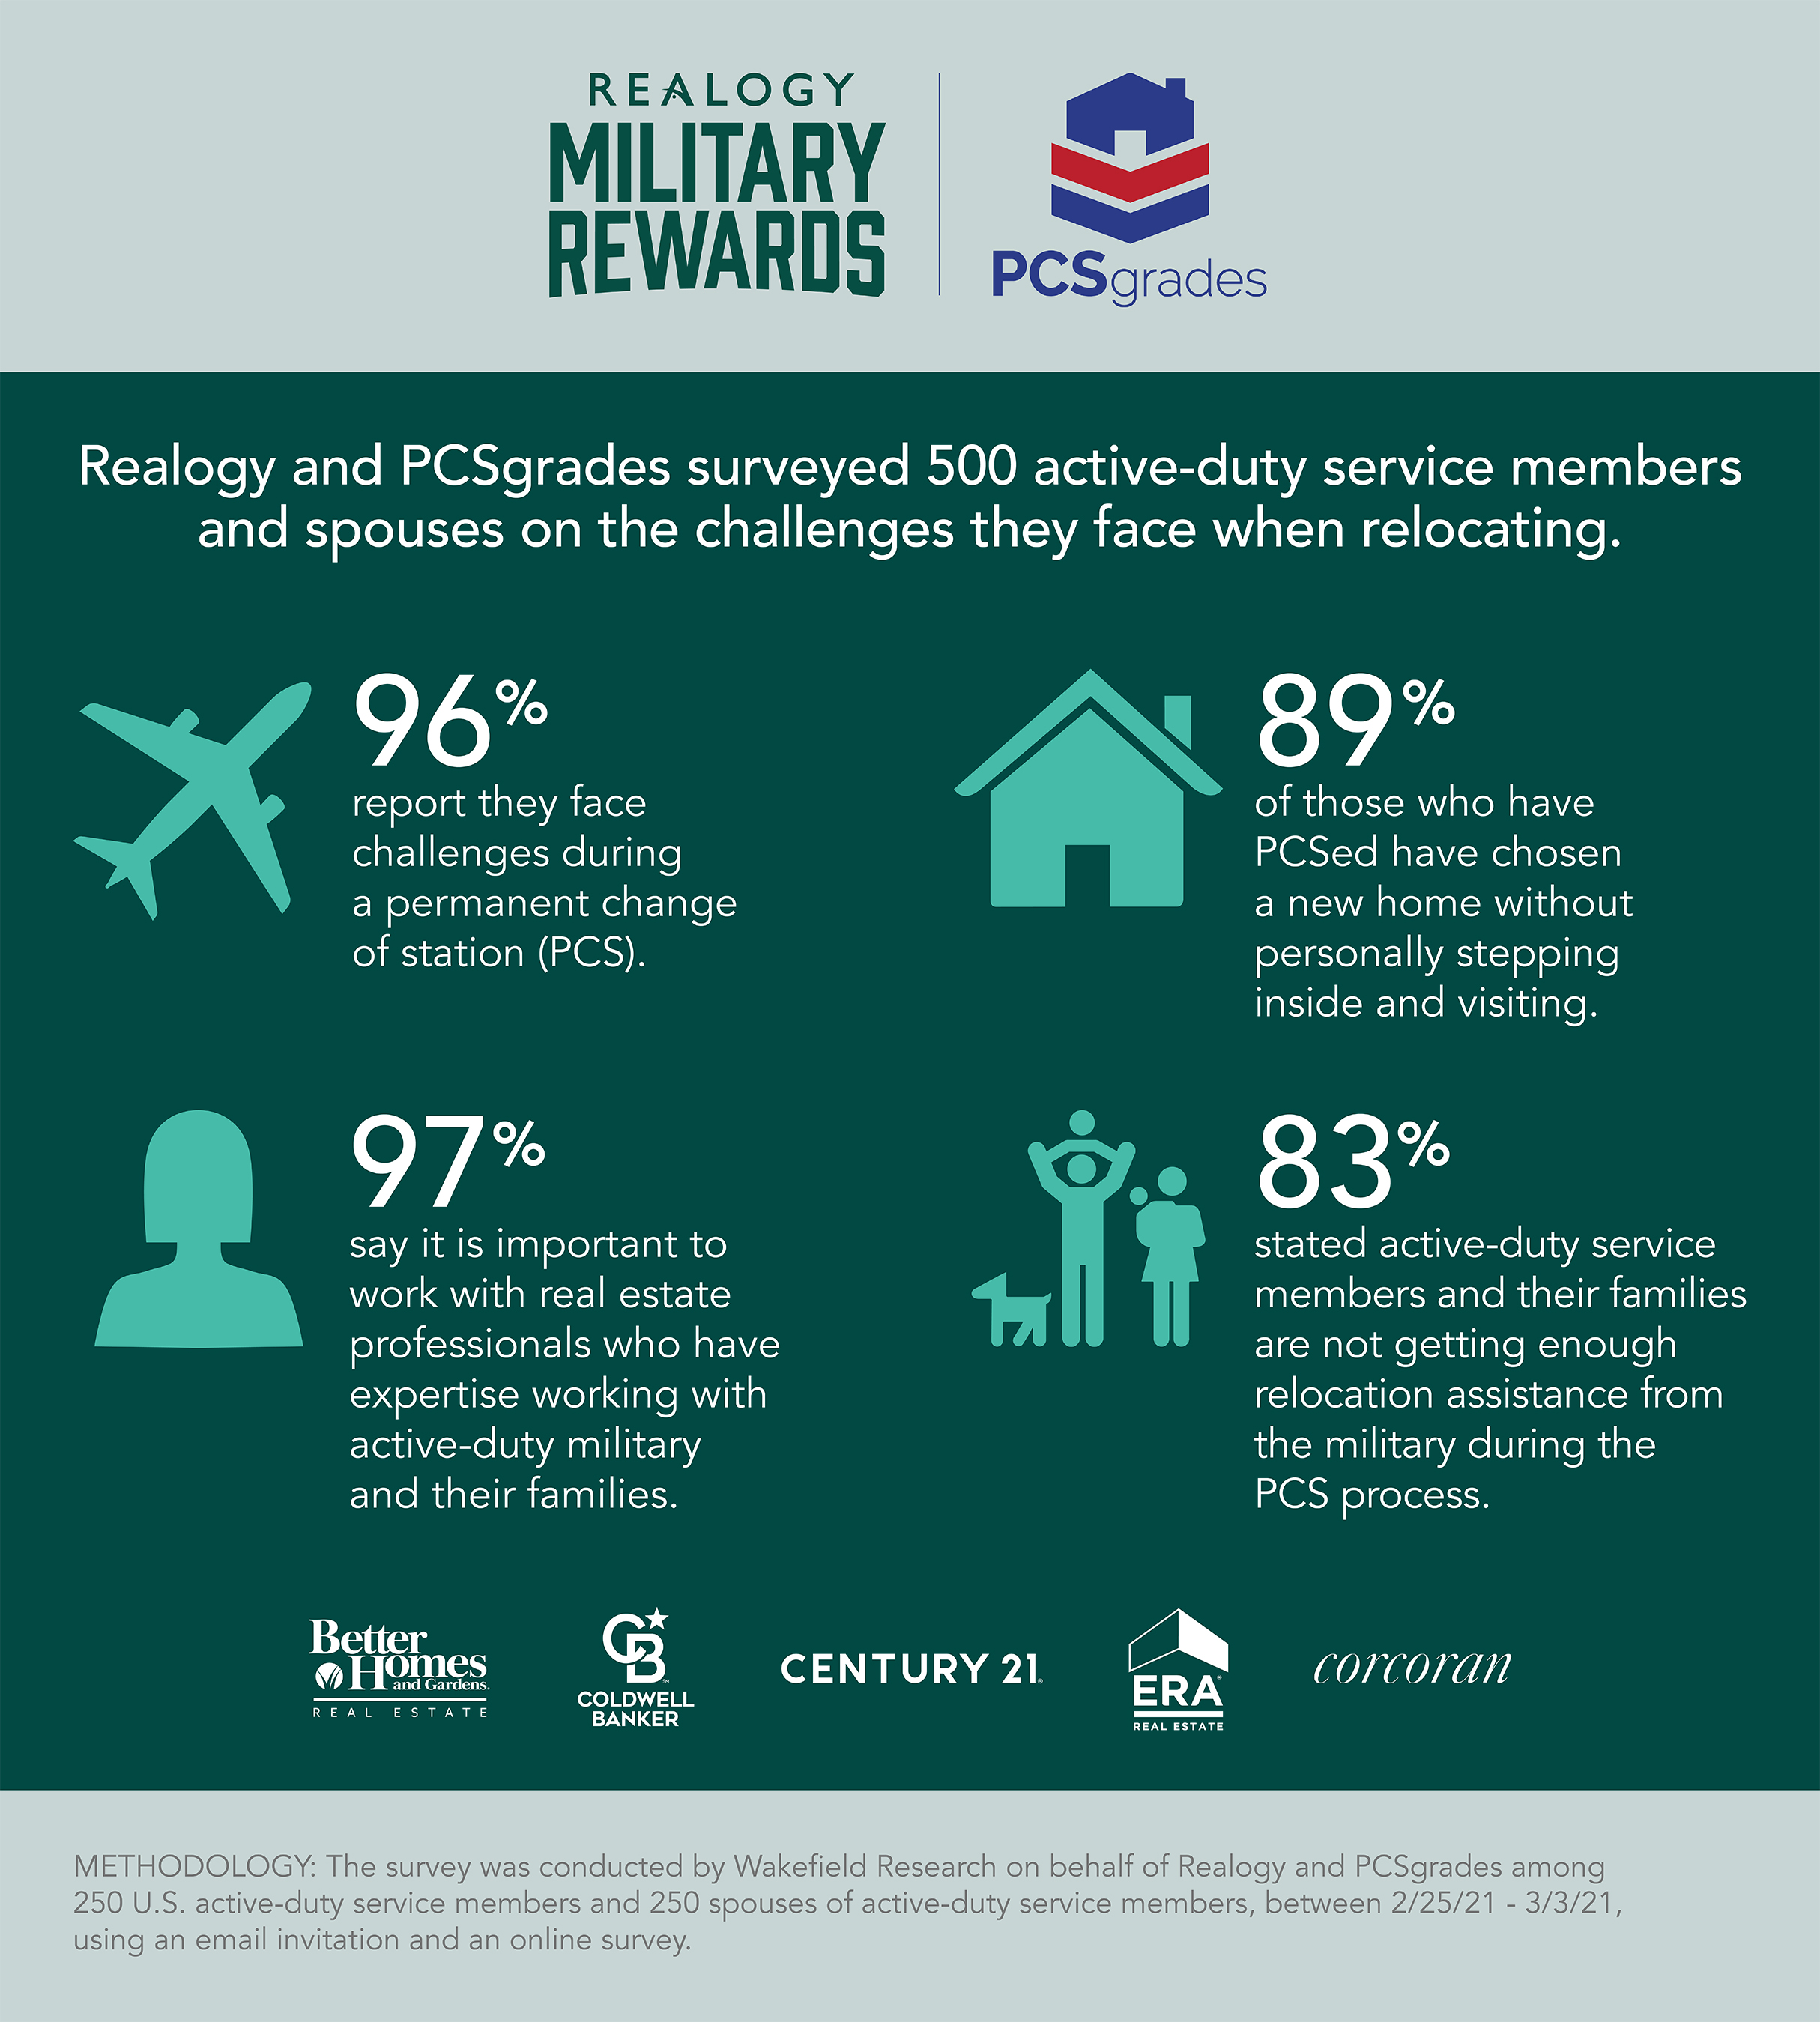 New Survey Data from Realogy and PCSgrades Uncovers Our Nation's Military, Veterans Families' Biggest Relocation Needs